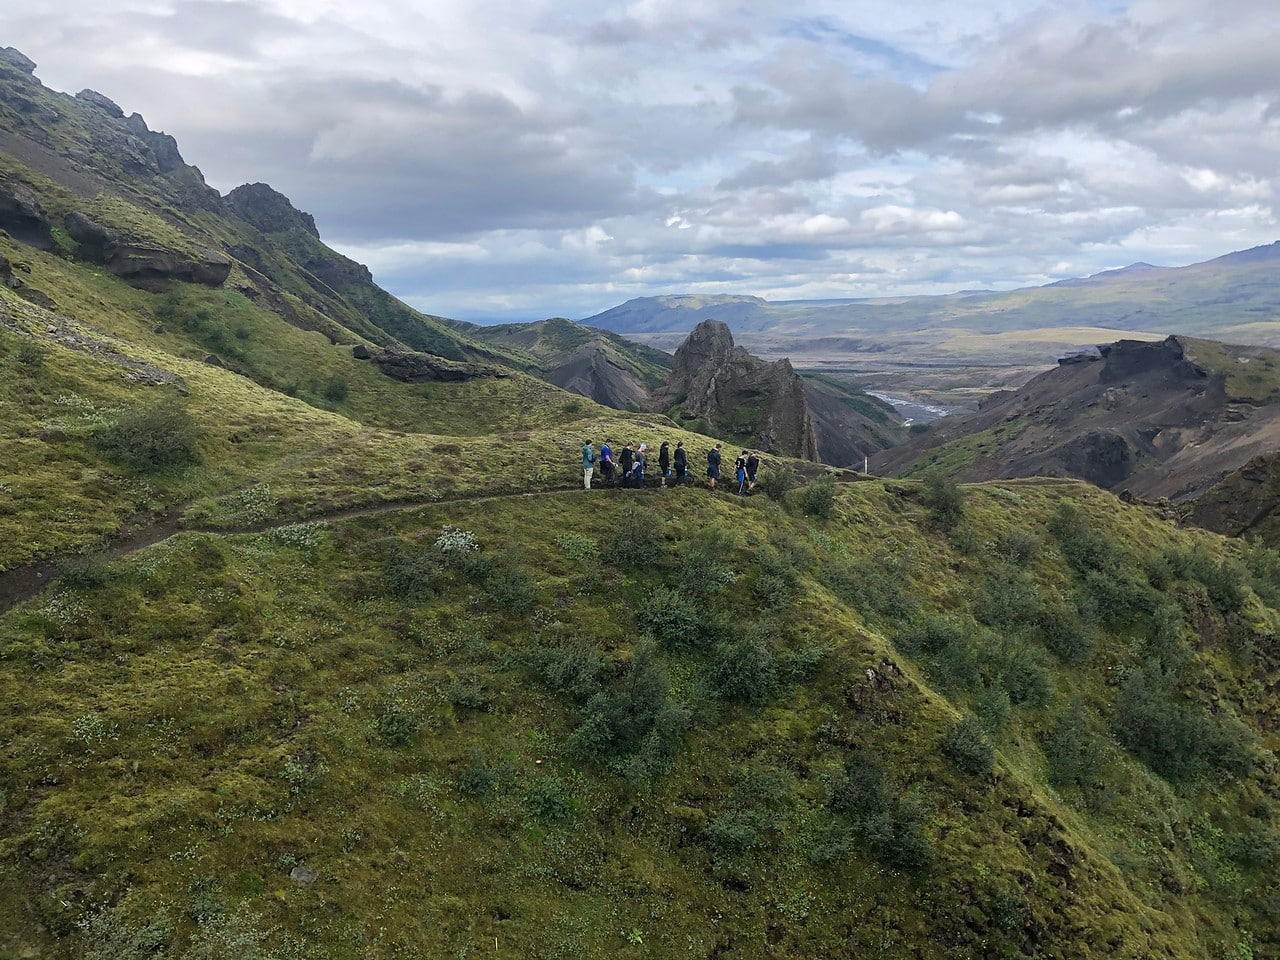 Teen adventure program hiking through the beautiful wilderness of Iceland this summer